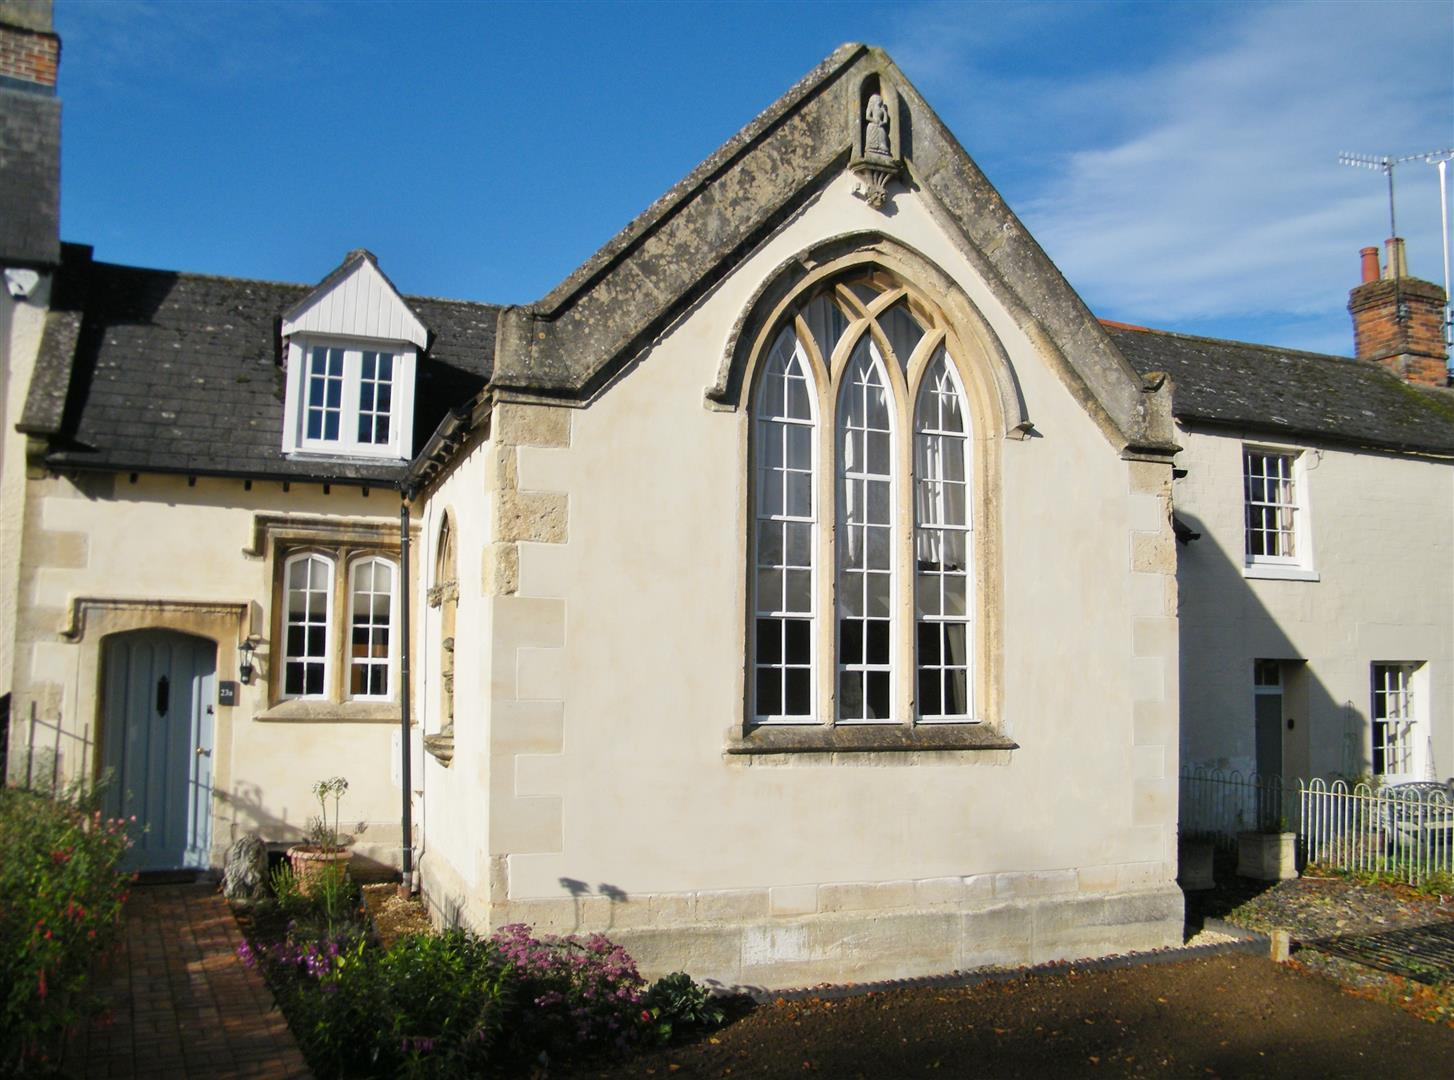 4 Bedrooms House for sale in The Green, Calne